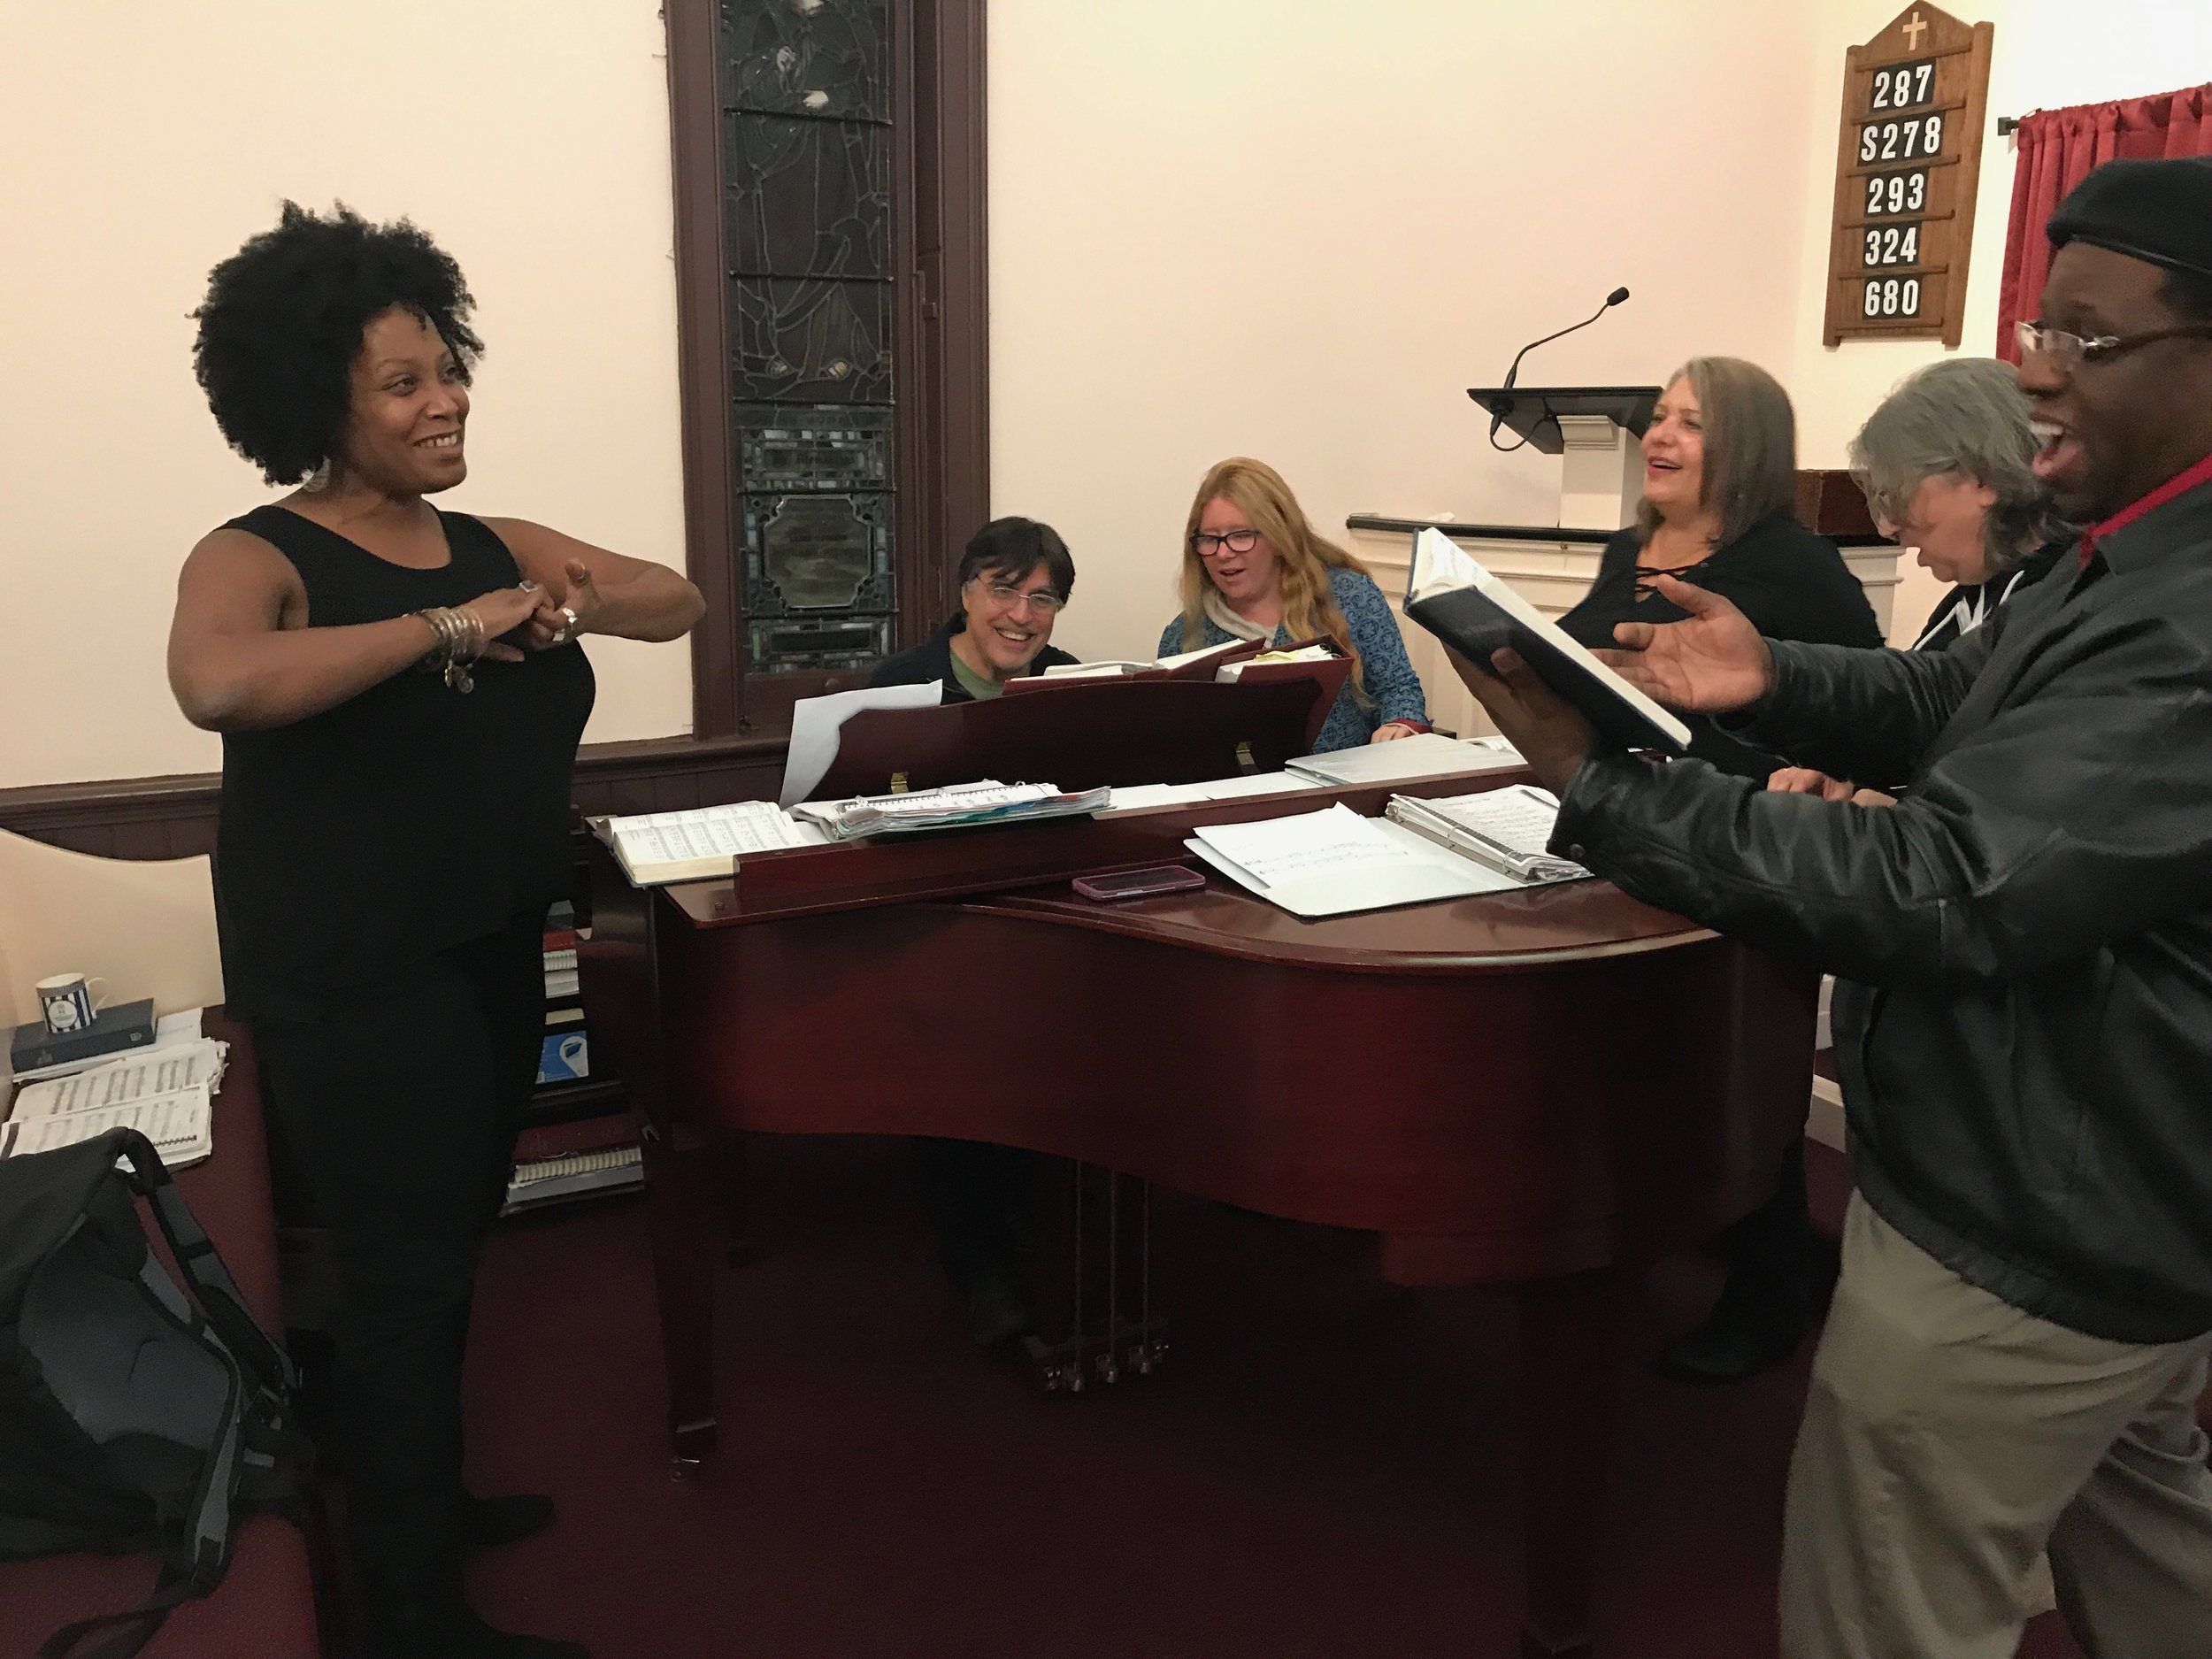 David Jutt, our Music & Choir Director, leads choir rehearsals on Wednesday nights at 7:30 and Sunday mornings at 9:45. Regardless of musical talent, all are welcome to join in!